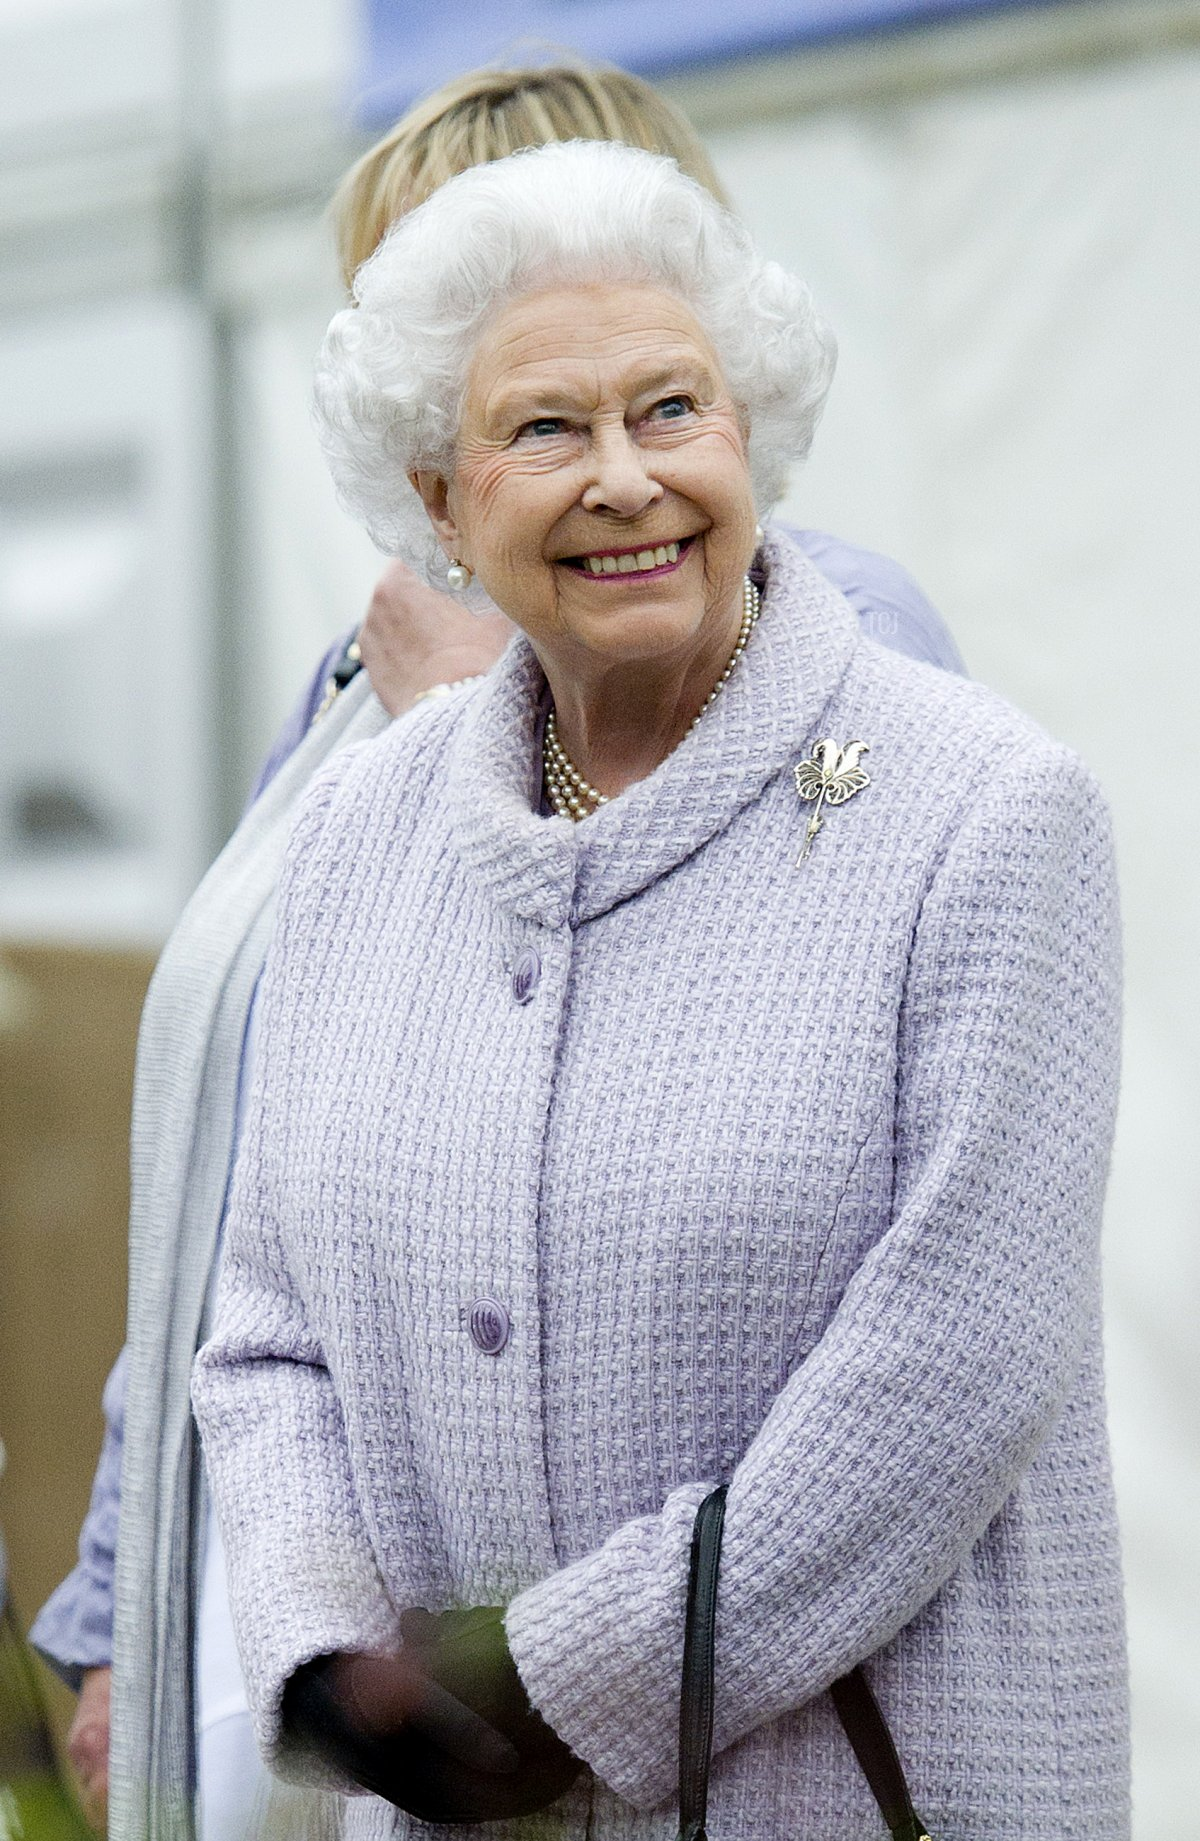 Britain's Queen Elizabeth II vists the Chelsea Flower Show in London on May 20, 2013